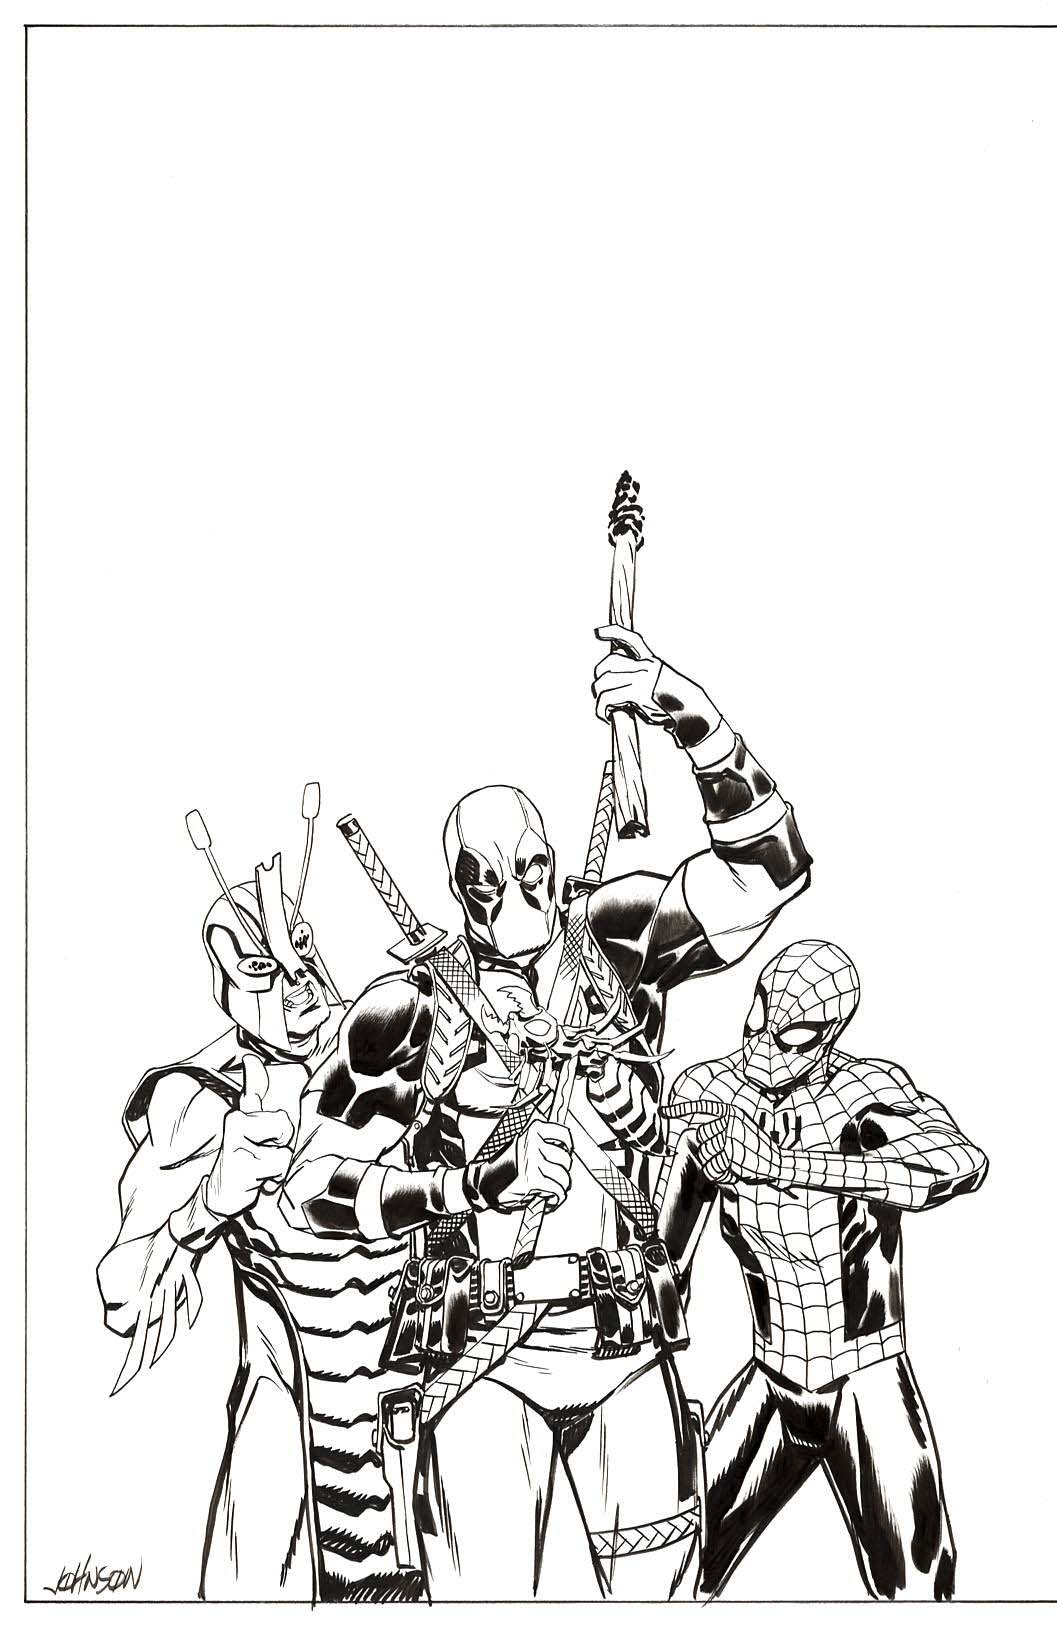 Spider-Man/Deadpool #42 Cover by Dave Johnson